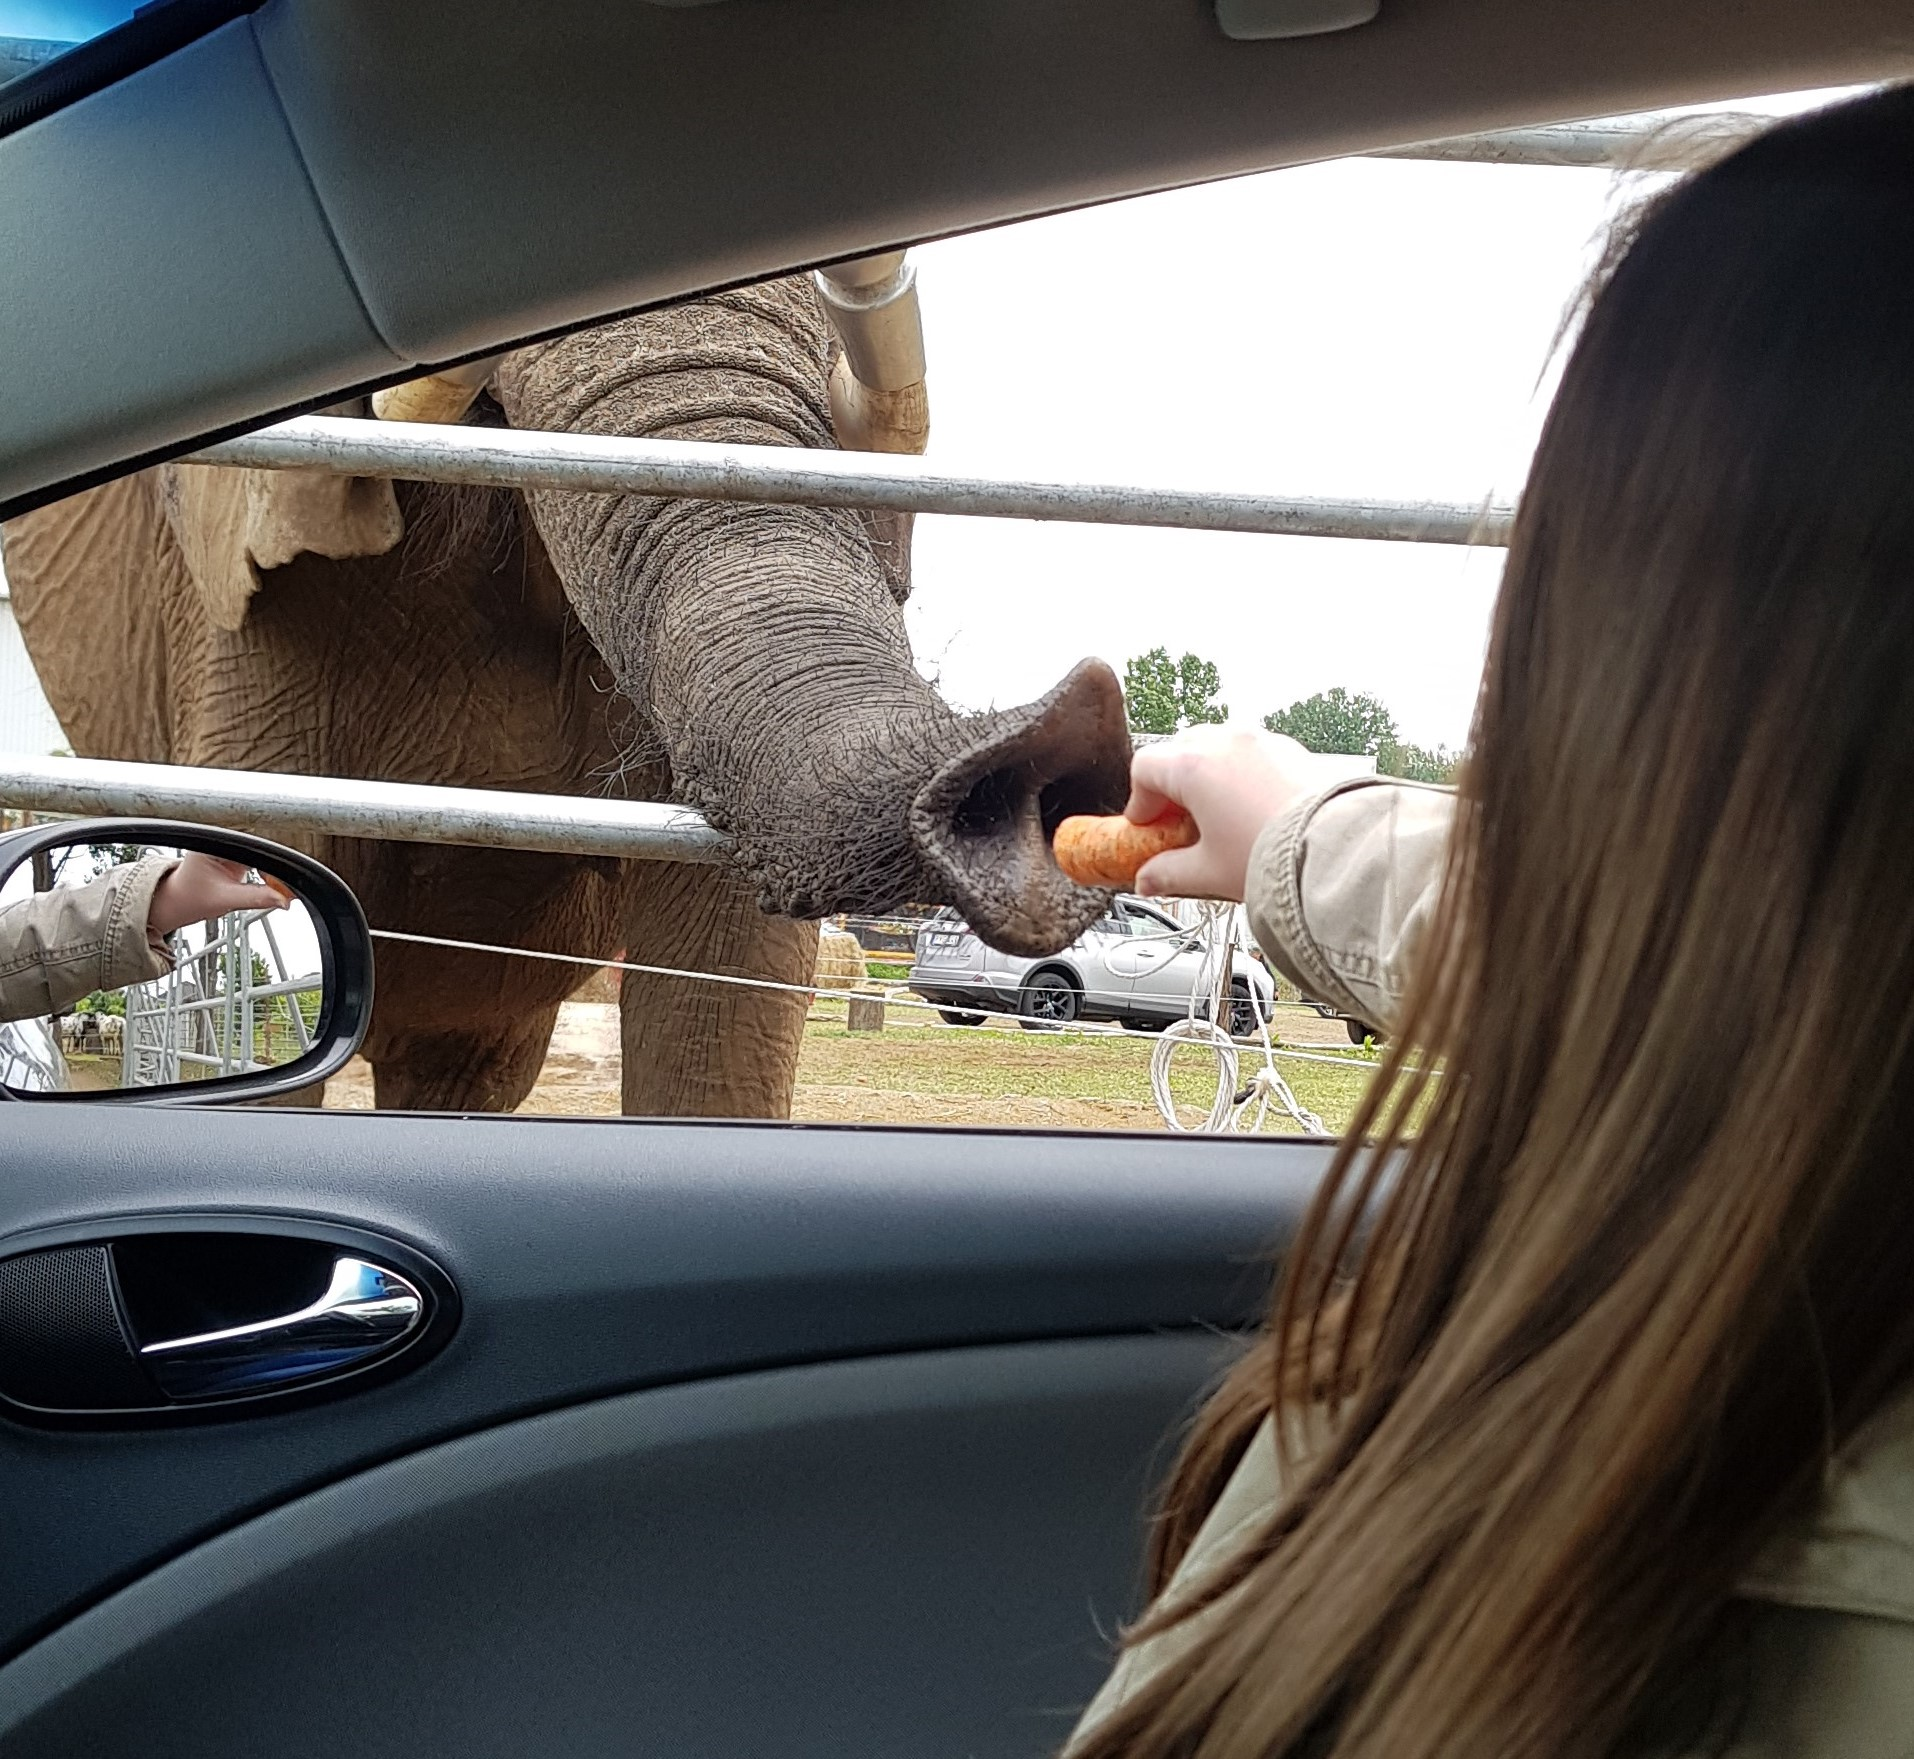 Safari park Szada elephant feeding 1